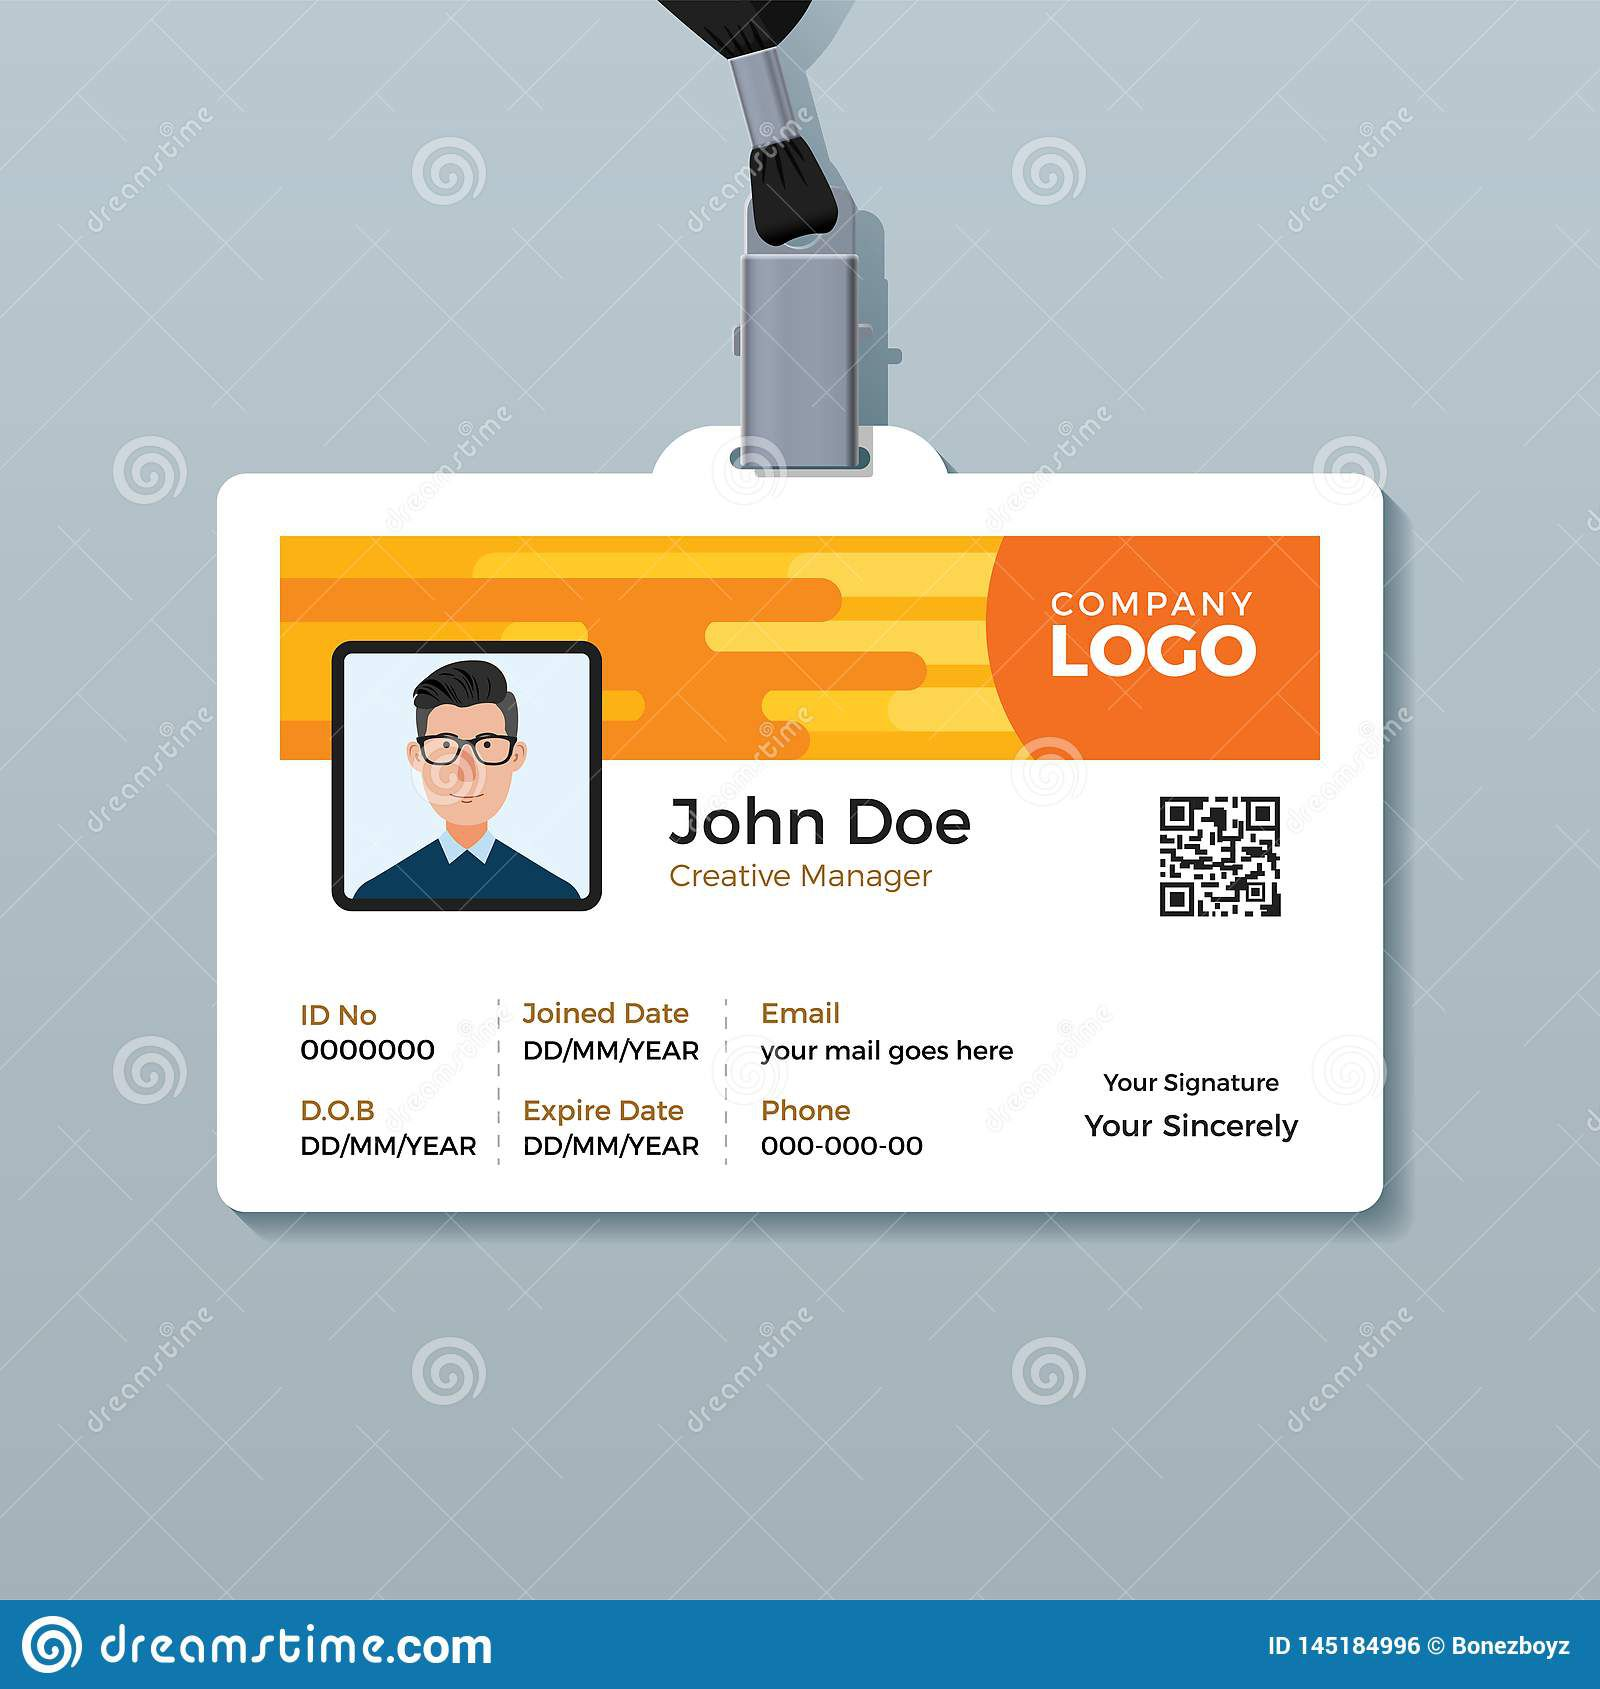 004 Unique Employee Id Badge Template Idea  Avery Card Free Download WordFull